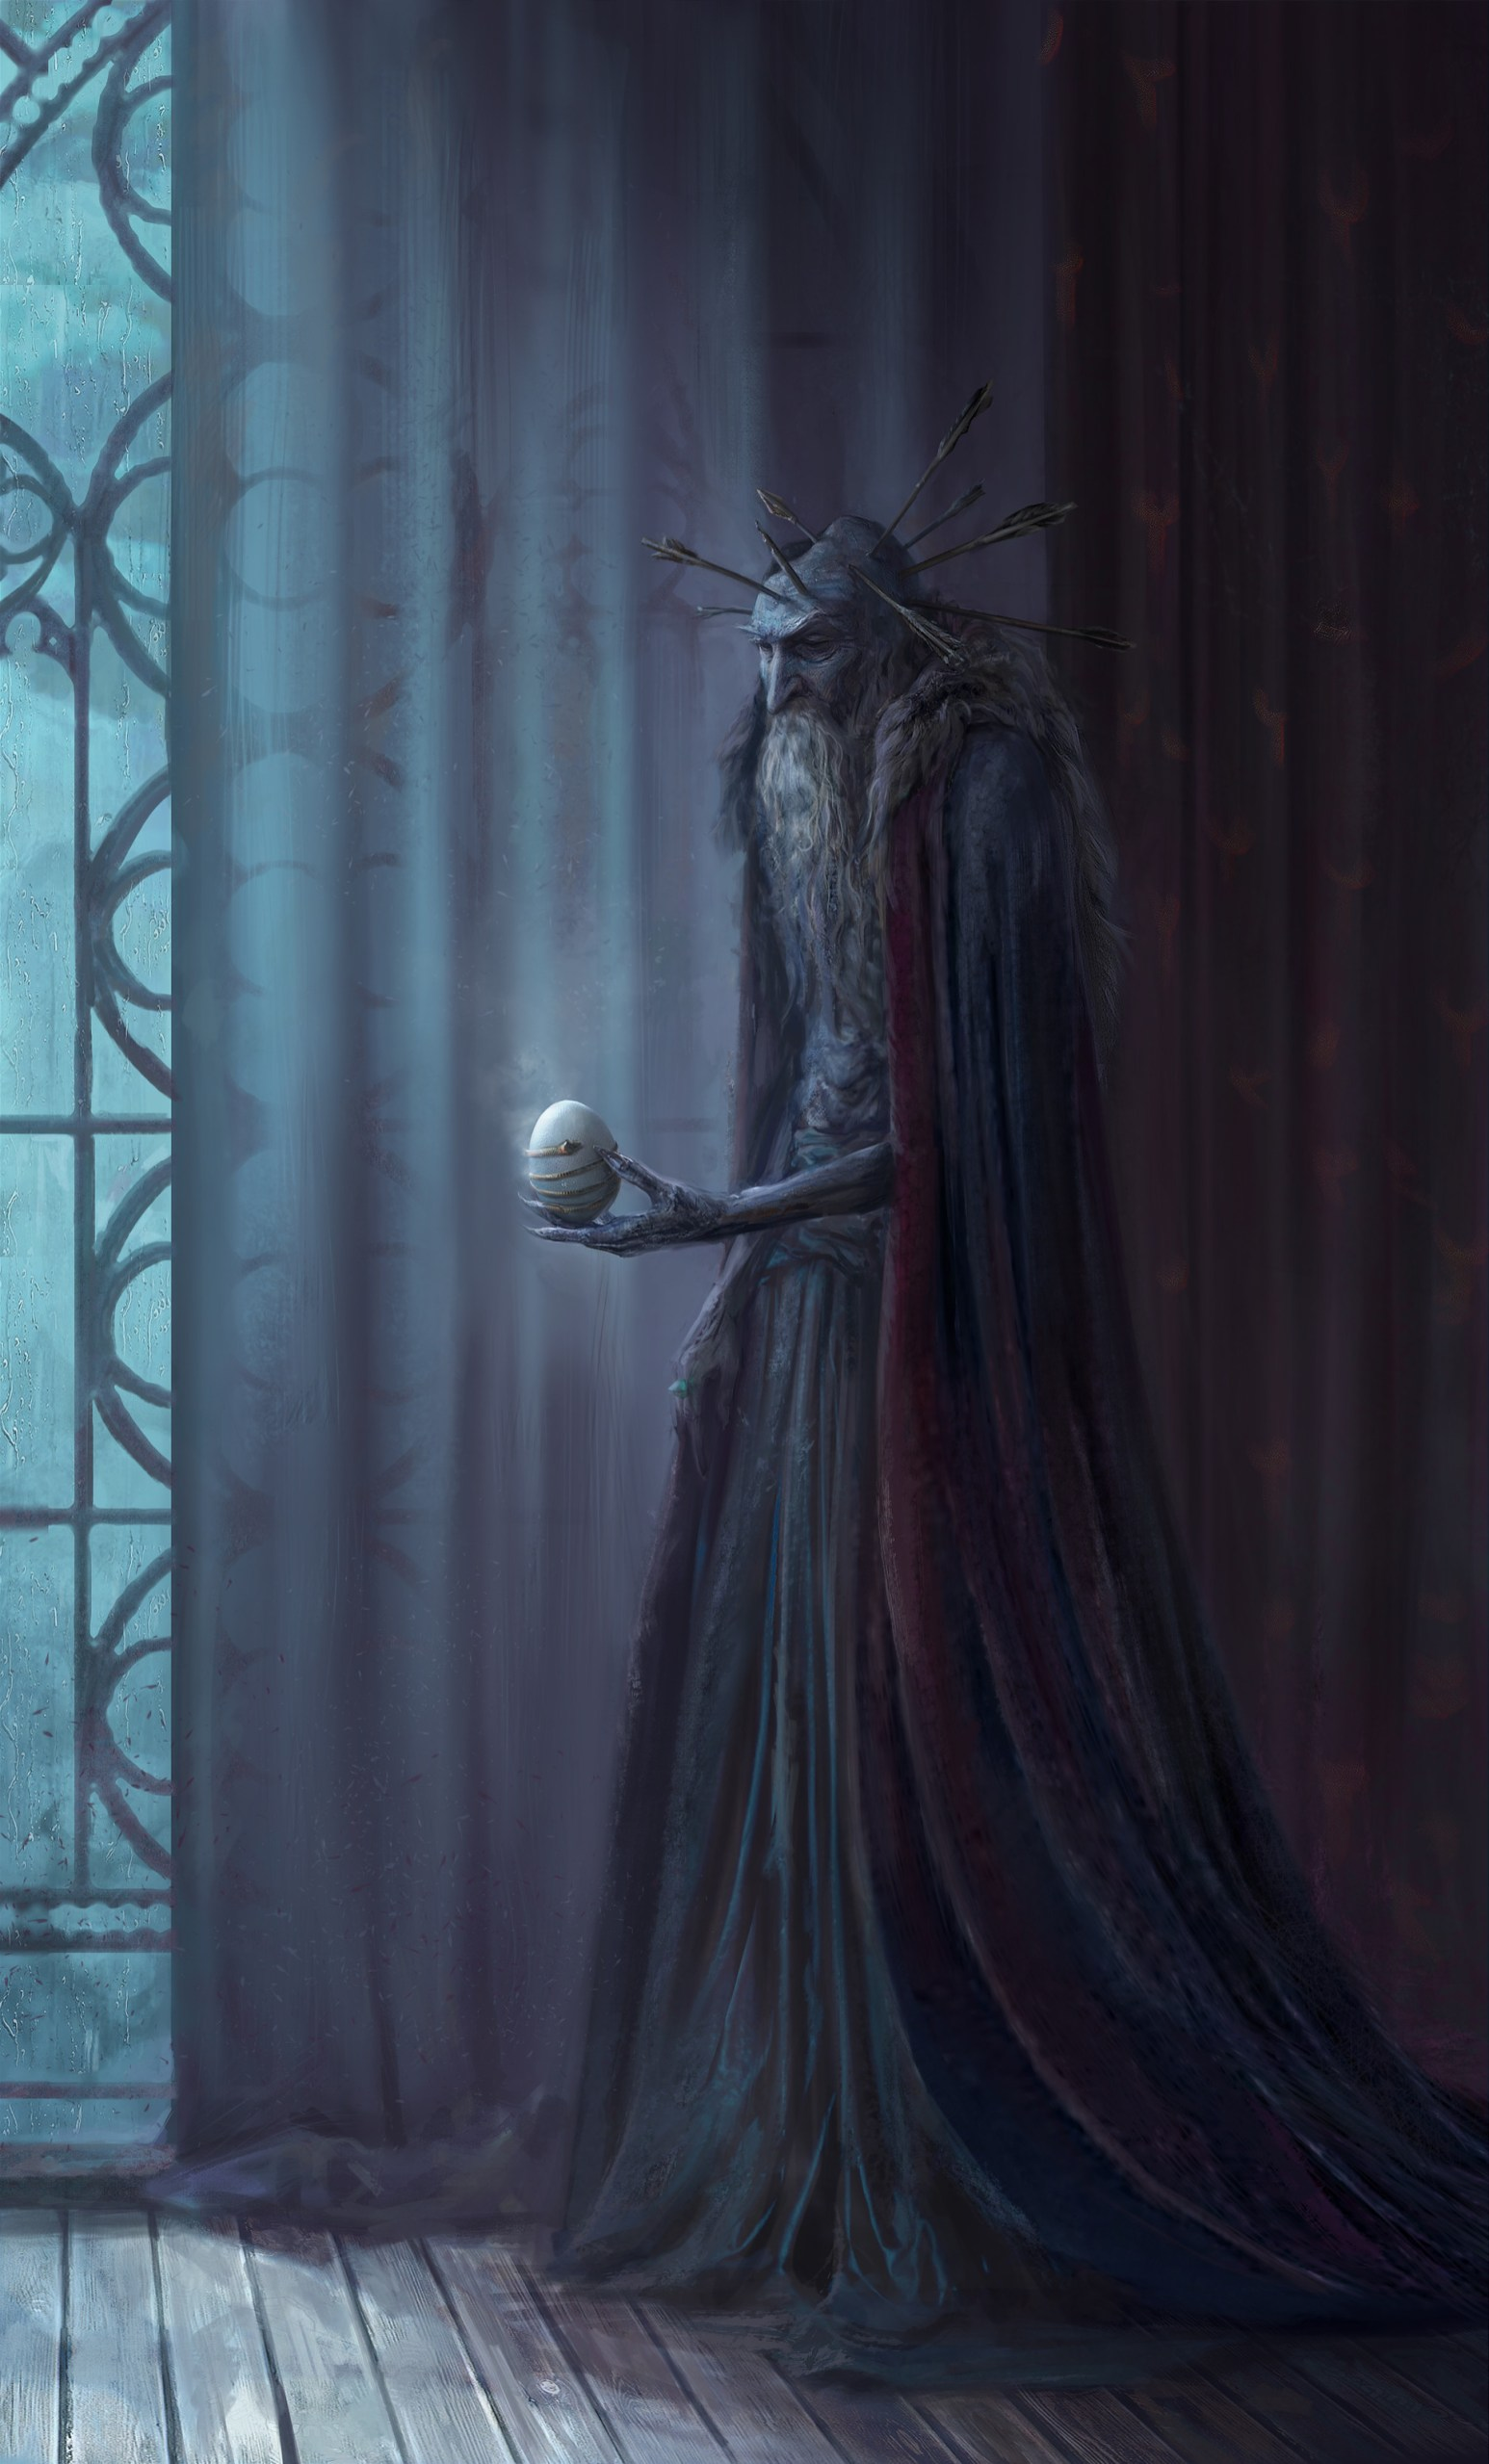 Koschei the deathless The Last Treasure by Alexey Zaporozhets